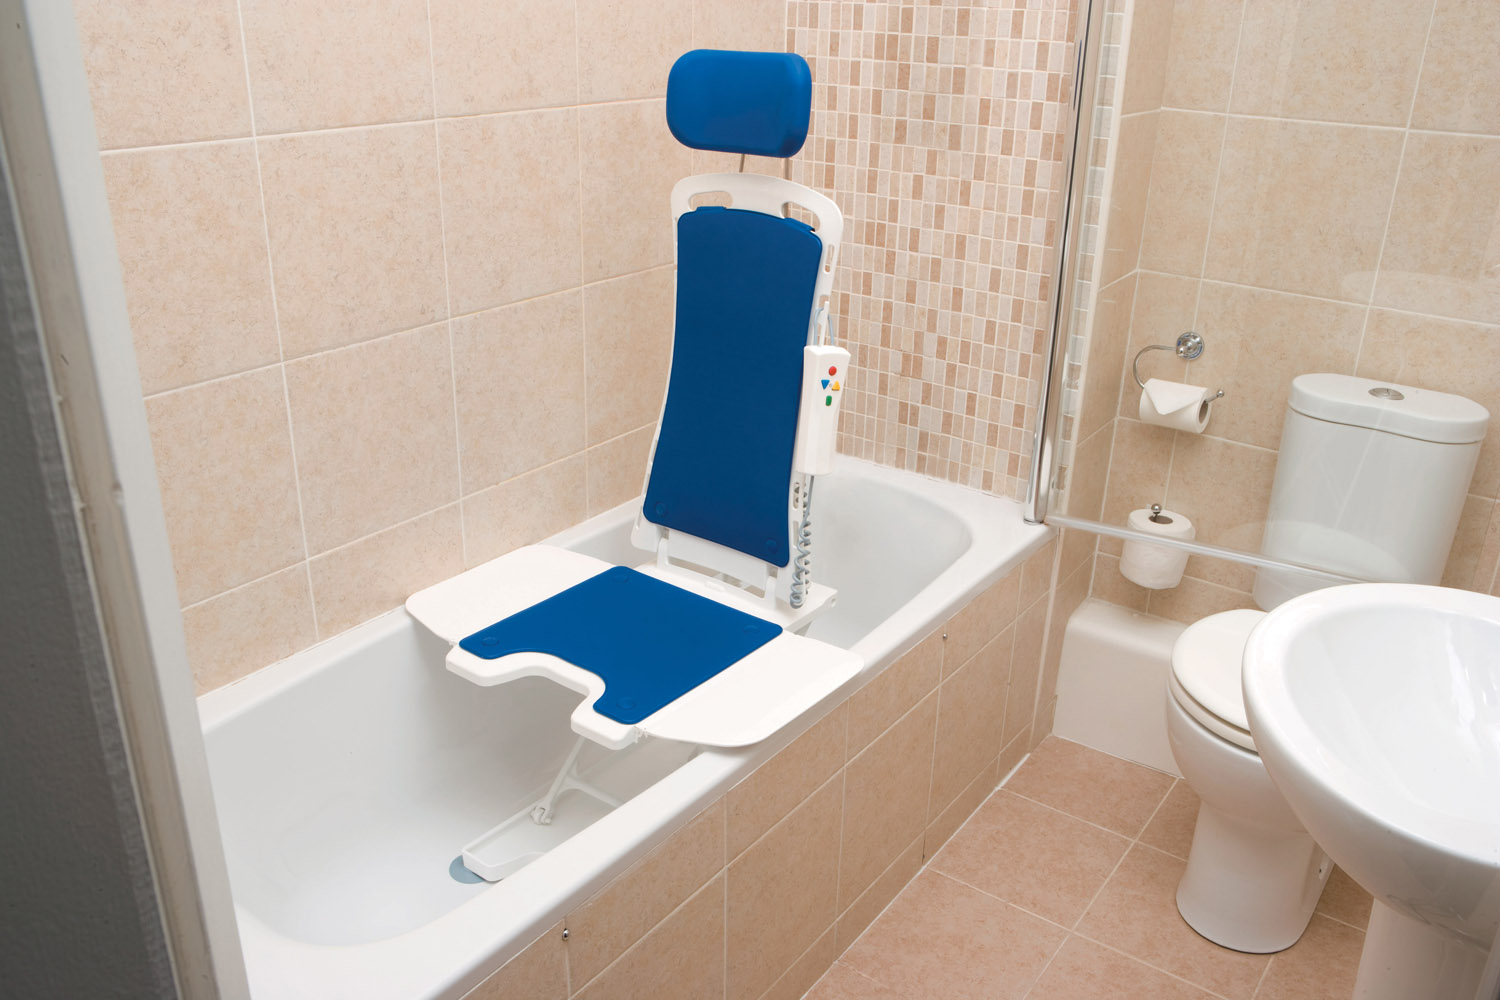 seat lifts for chairs wheel chair price in pakistan adirmed ultra quiet automatic bath lift review